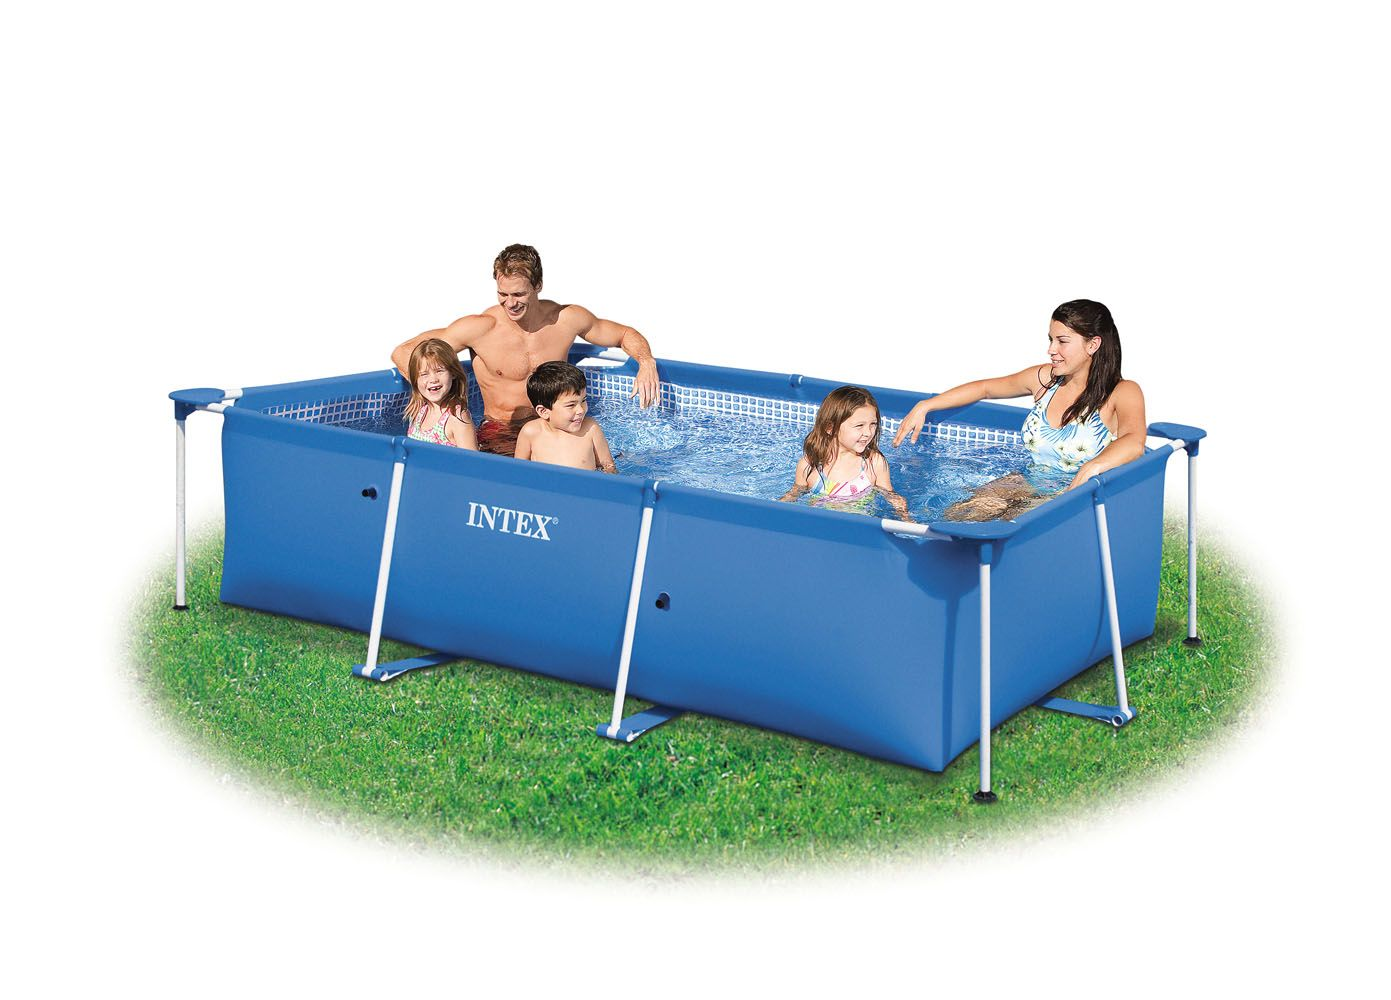 Piscine rectangulaire hors sol intex intex for Piscine auchan